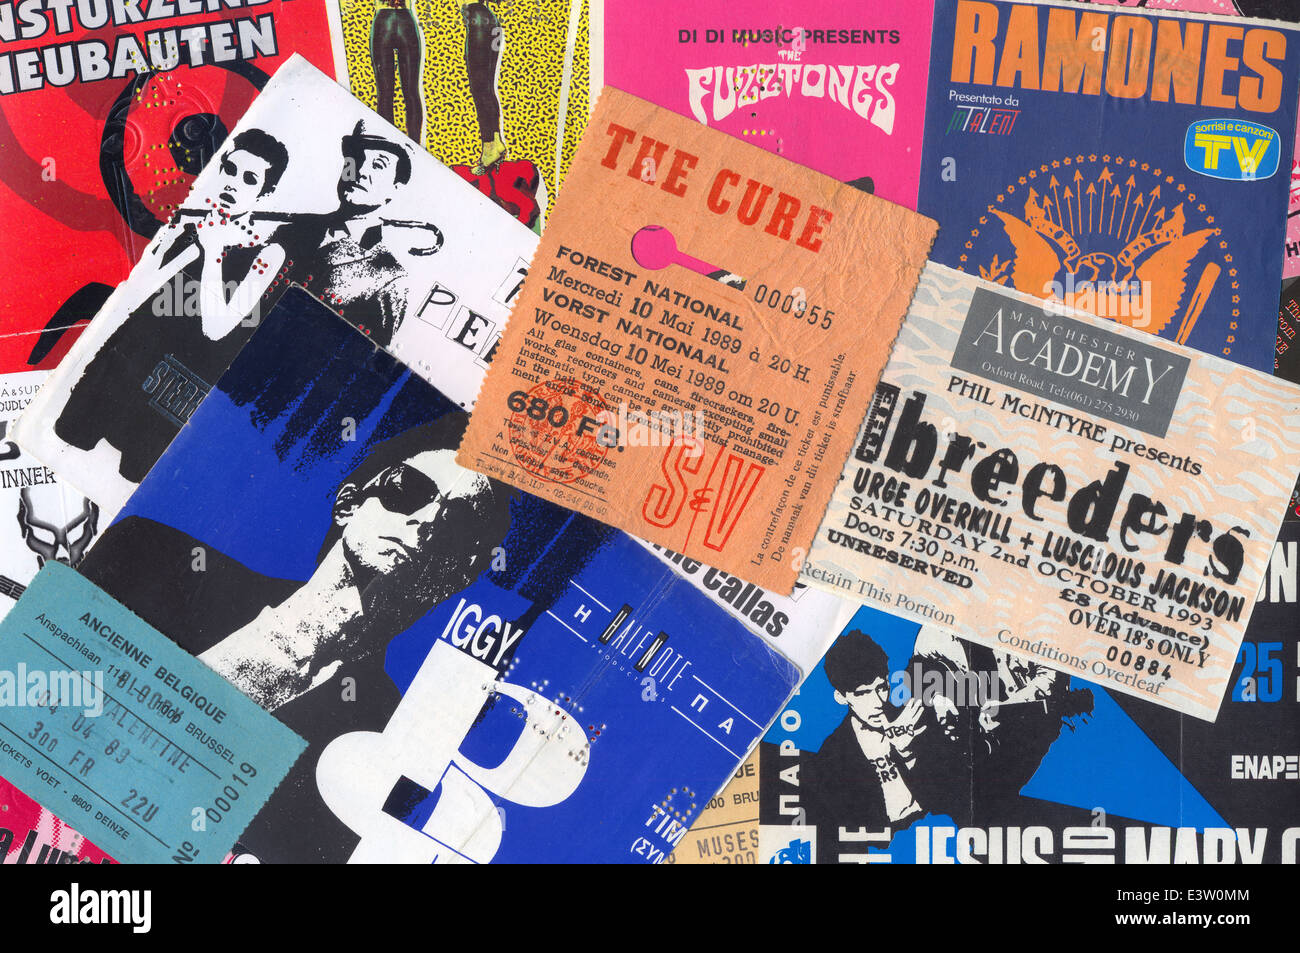 Vintage concert ticket stubs punk and alternative rock music memorabilia from the 80s and 90s. - Stock Image